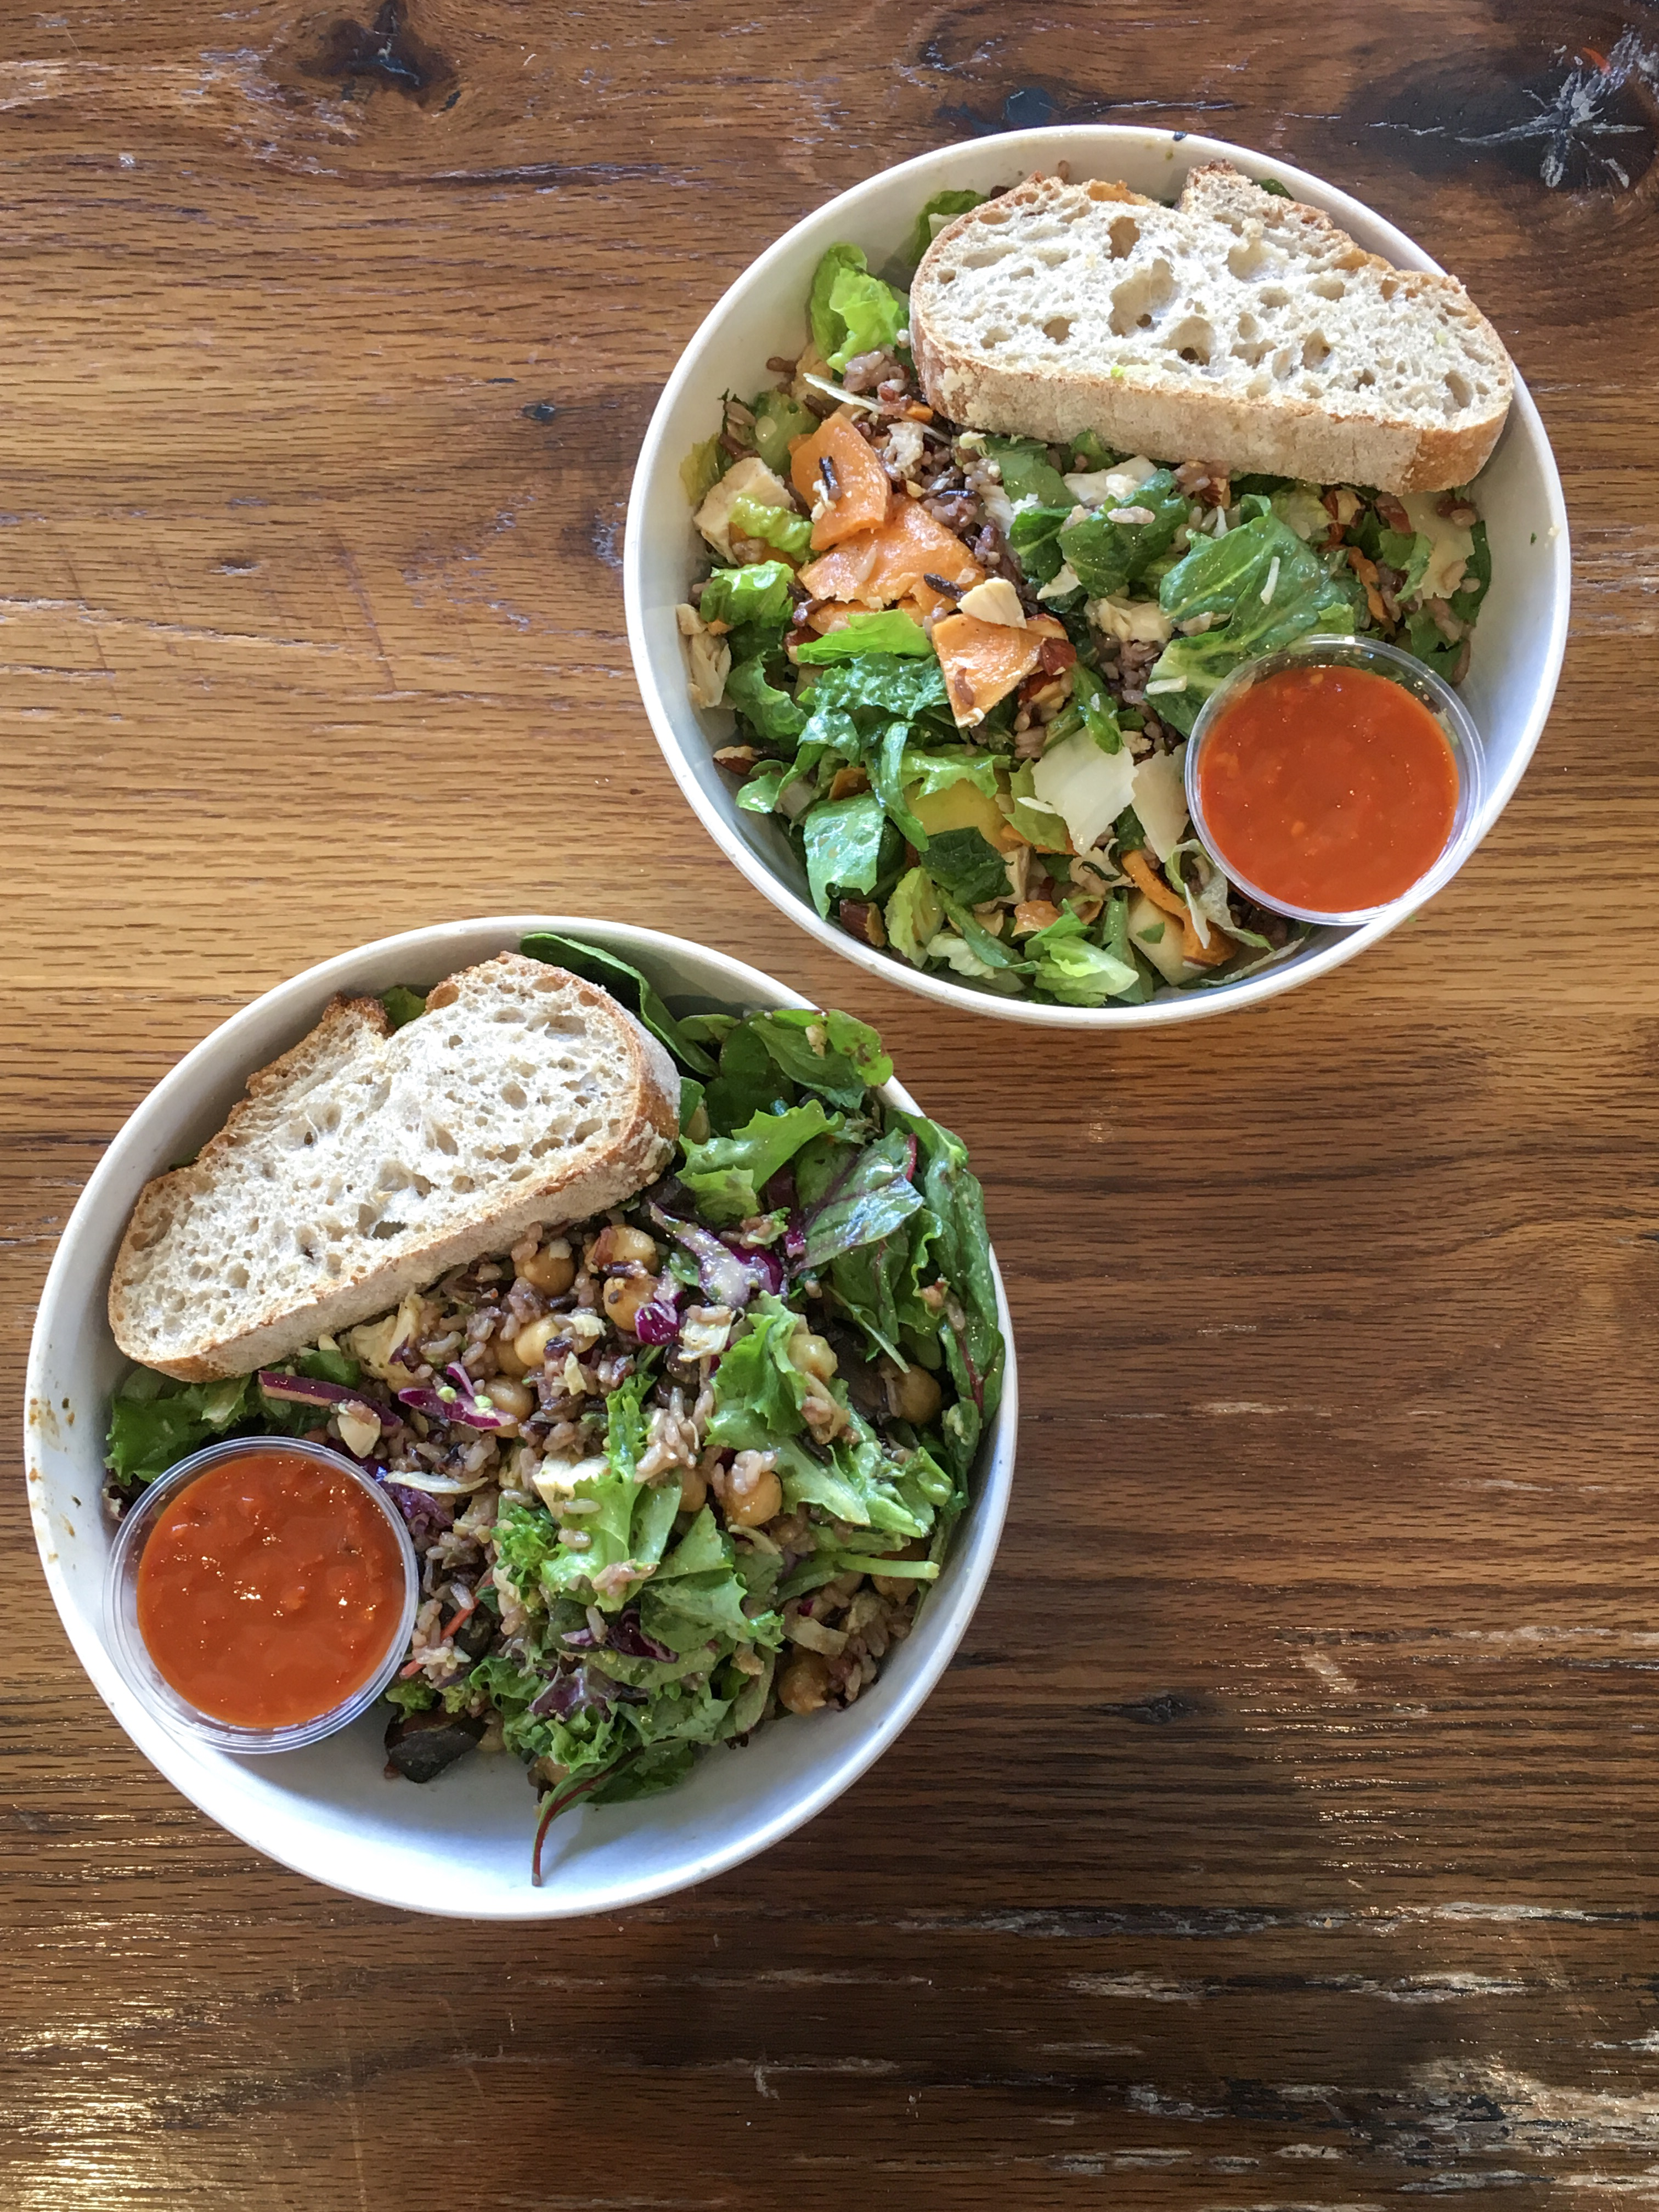 Sweetgreen Old Town Alexandria